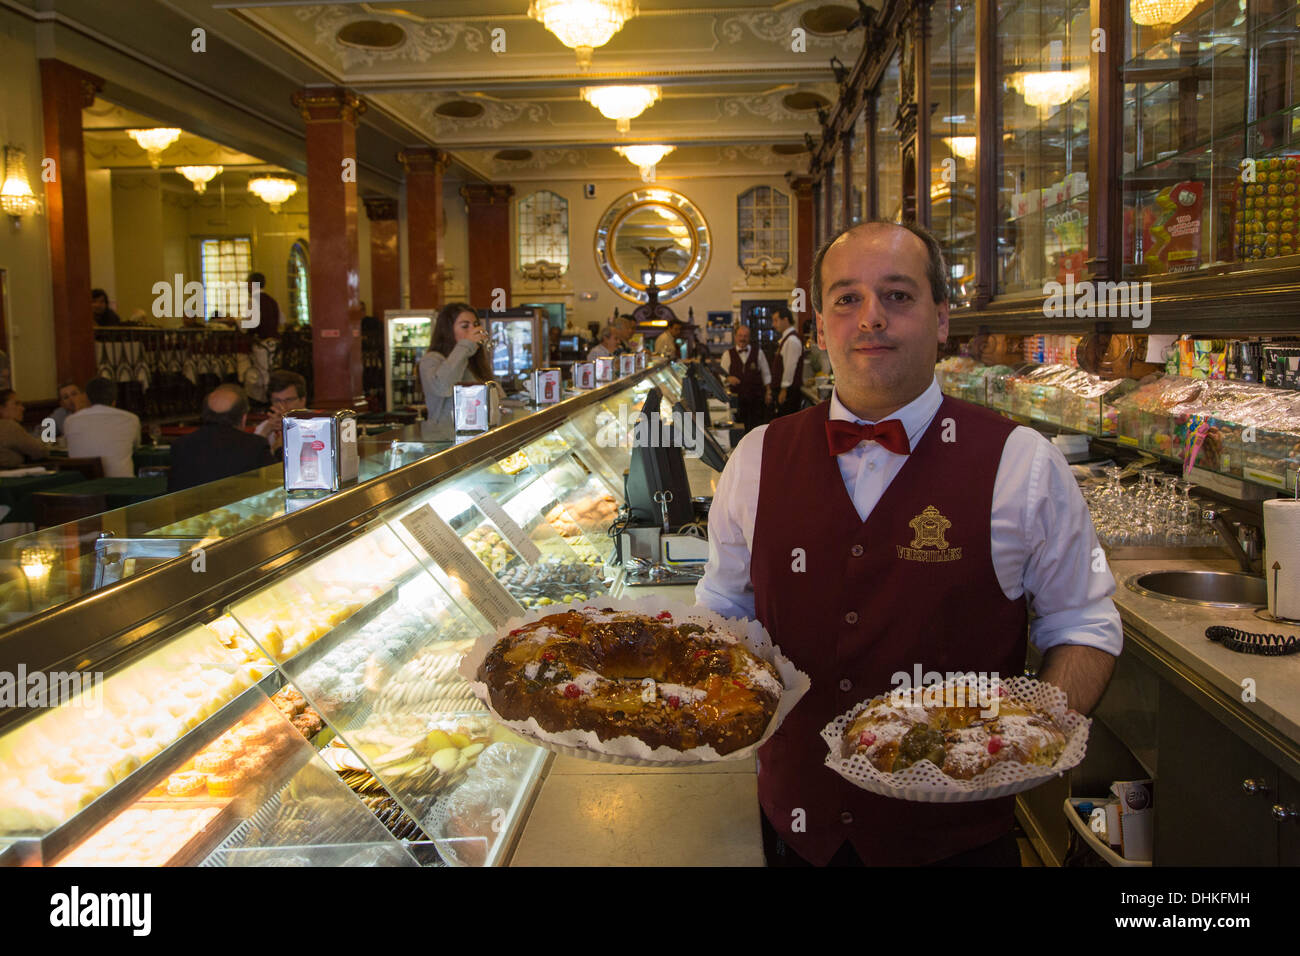 Waiter with traditional Bolo Rei cakes at Pastelaria Versailles cafe and bakery in Saldanha district, Lisbon, Lisboa, Portugal - Stock Image